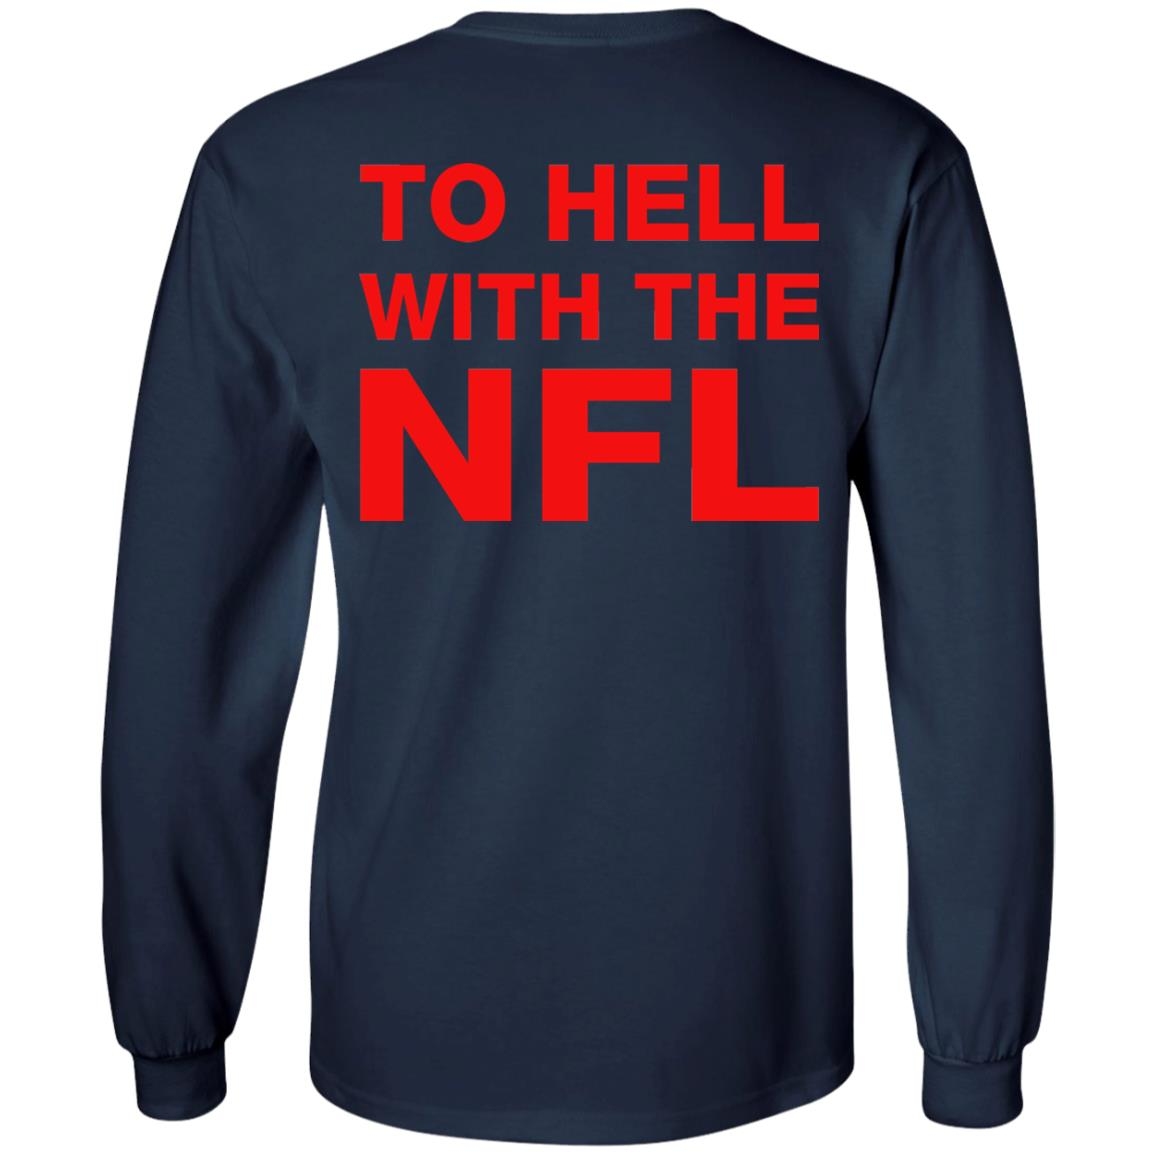 image 329 - To Hell With The NFL Shirt, Sweatshirt, Hoodie